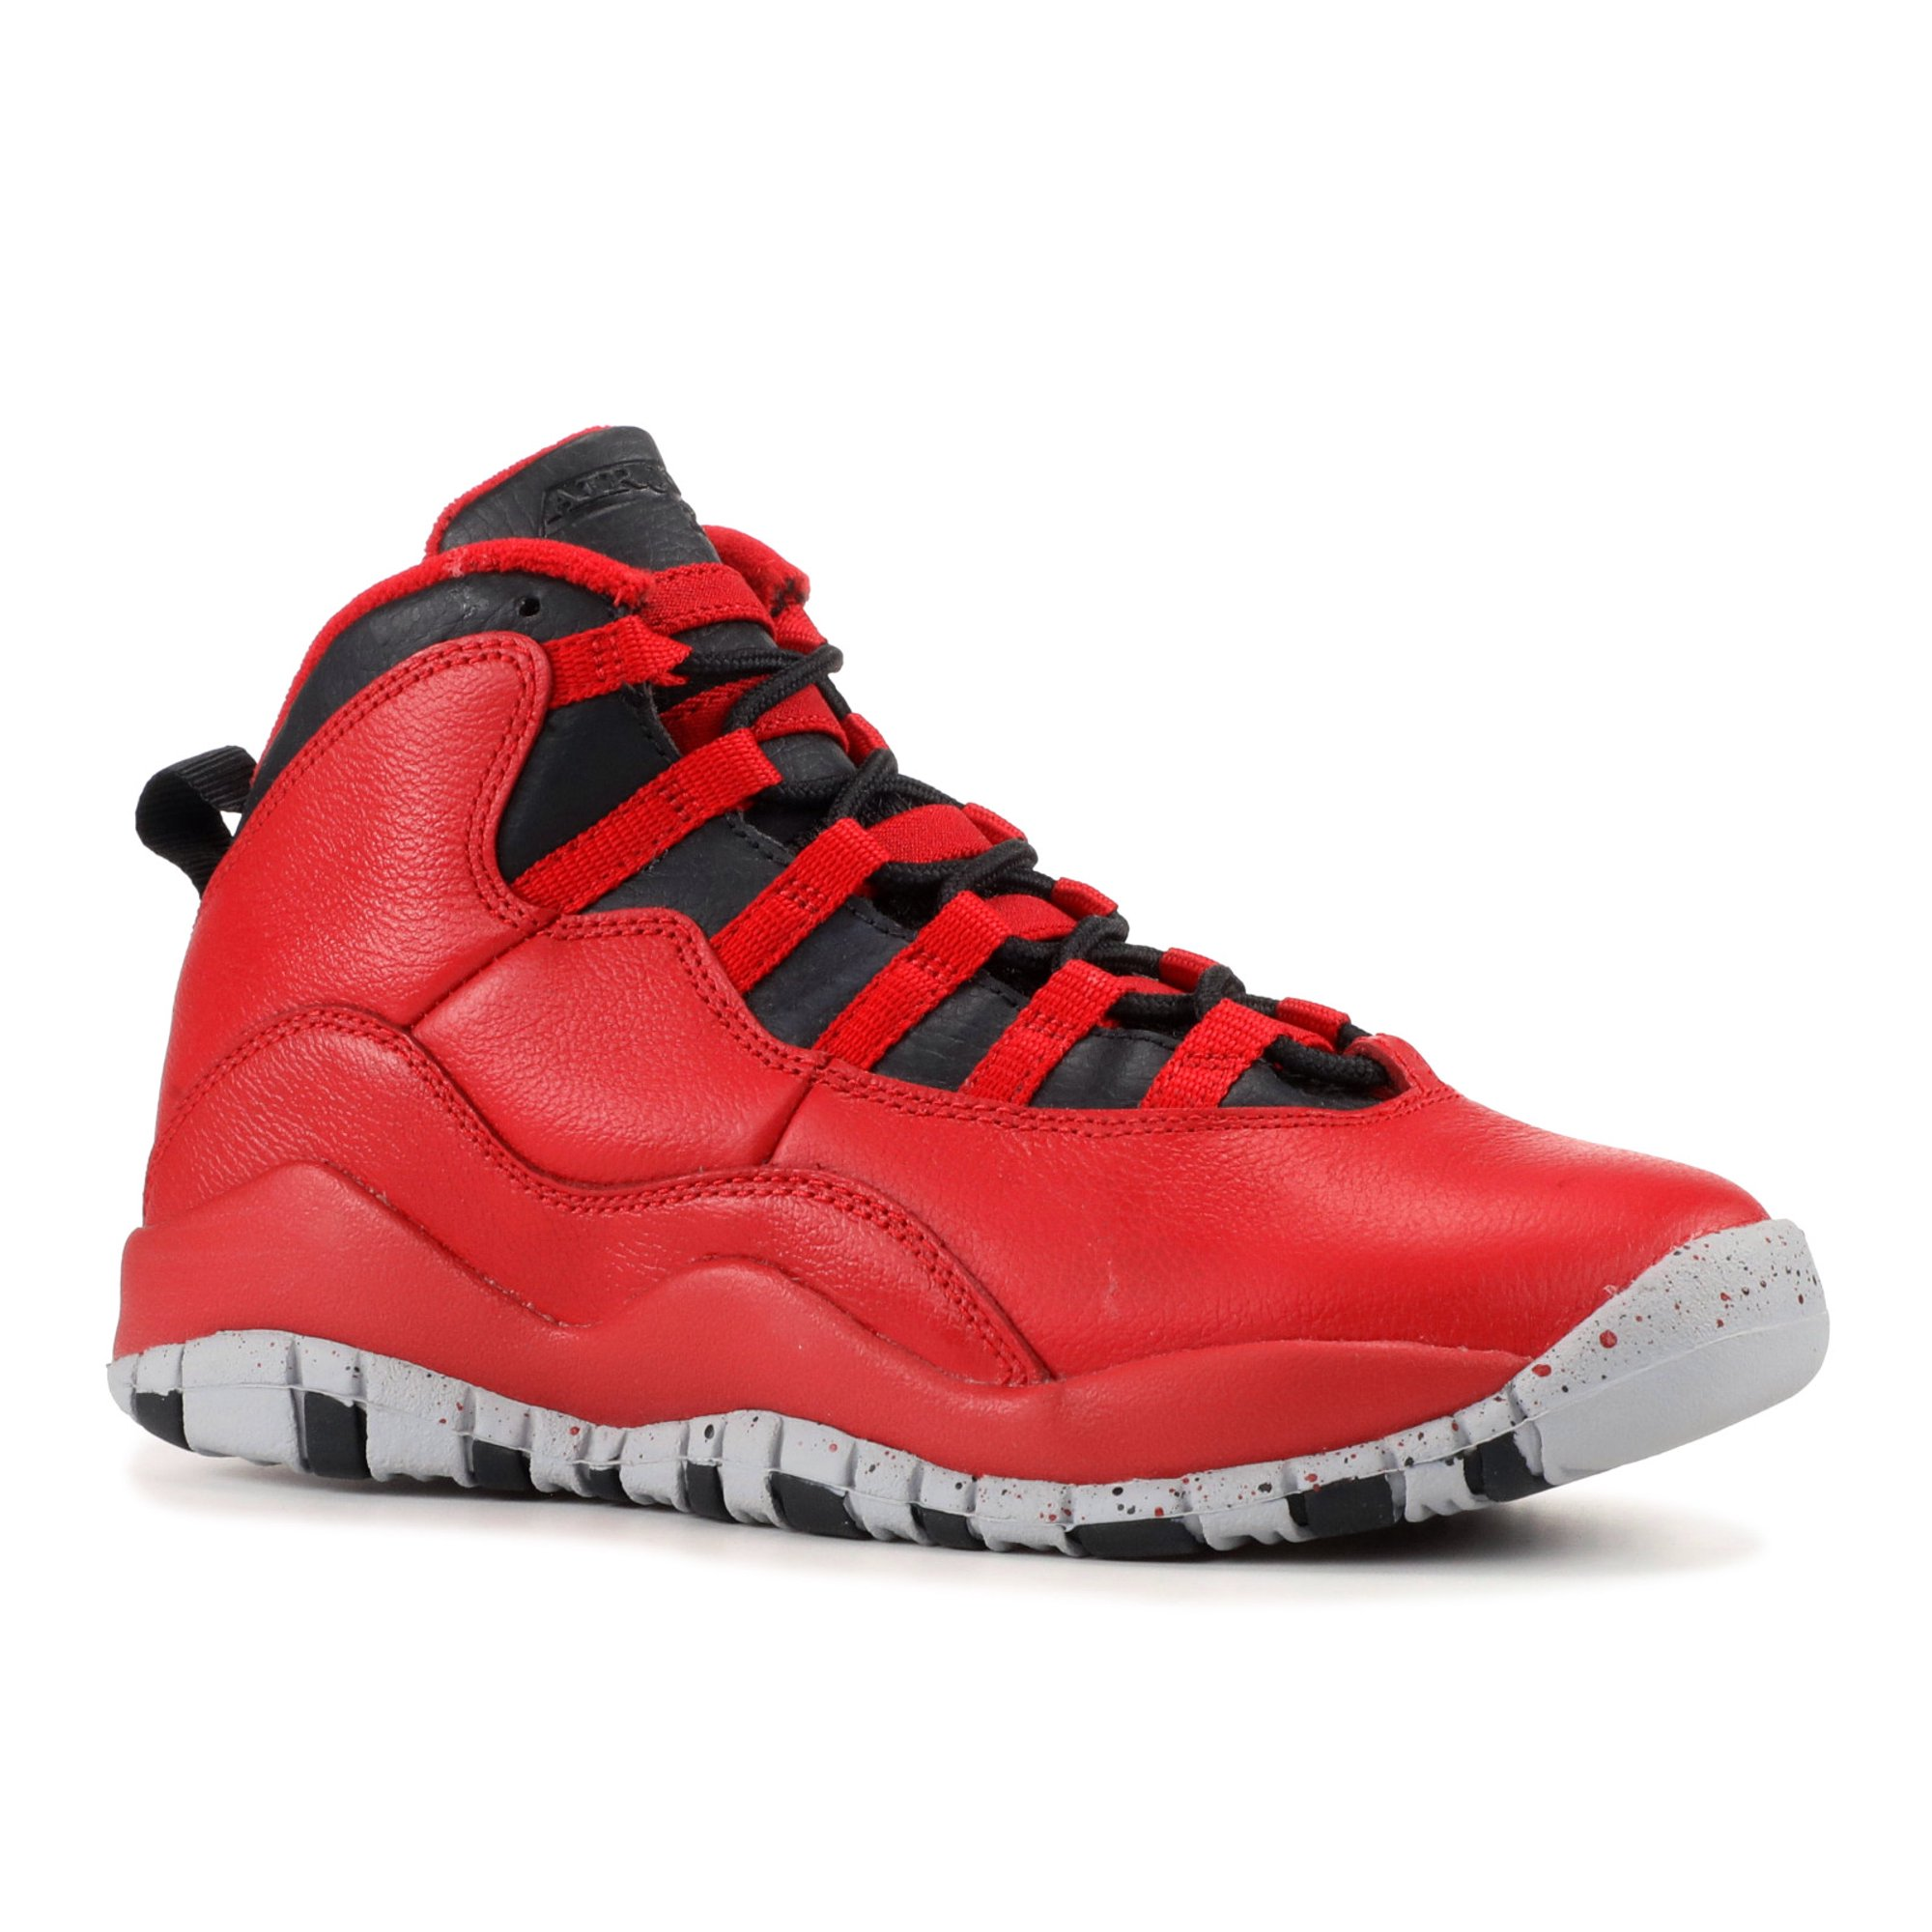 e0d28107d4b8ad Air Jordan - Unisex - Air Jordan 10 Retro 30Th Bg (Gs)  Bulls Over Broadway   - 705179-601 - Size 4.5